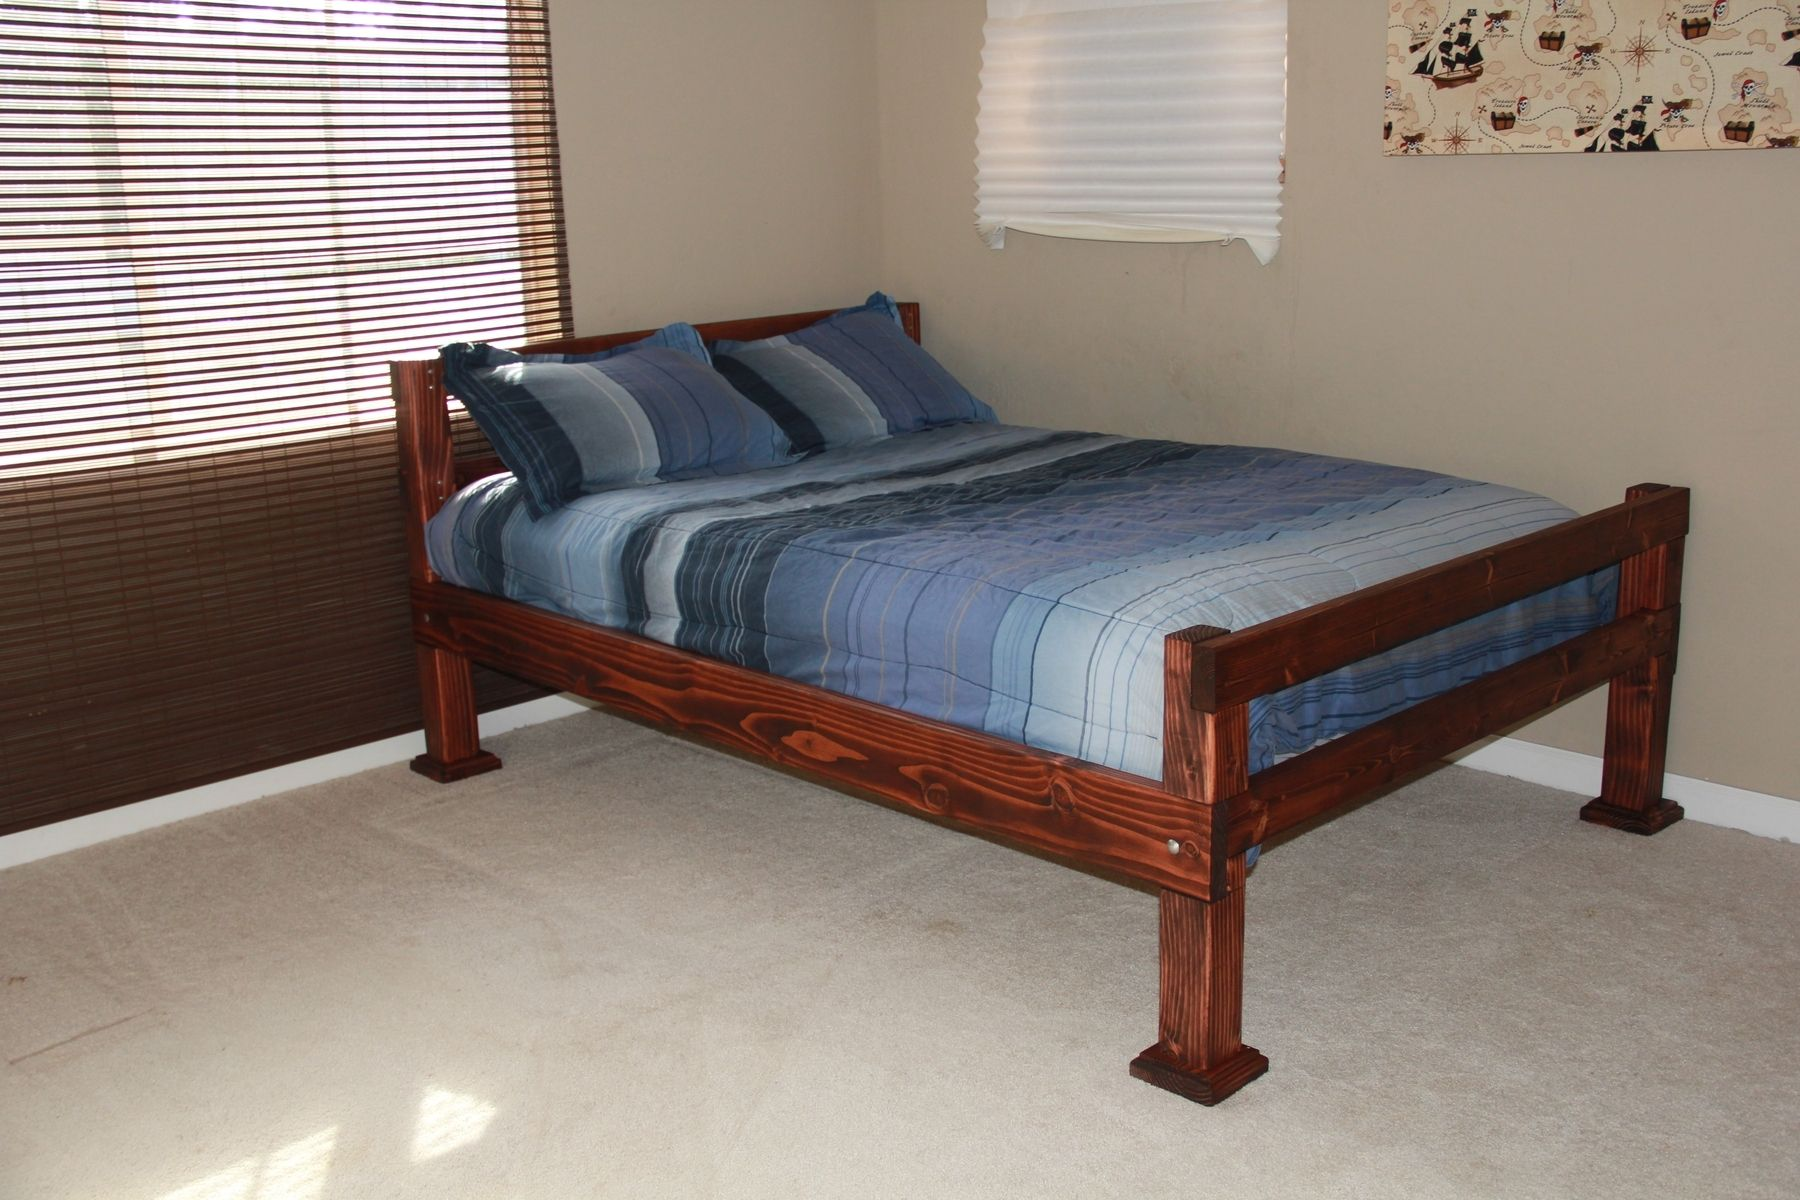 custom made rustic four corner post full size bed by scott 39 s custome woodworking. Black Bedroom Furniture Sets. Home Design Ideas